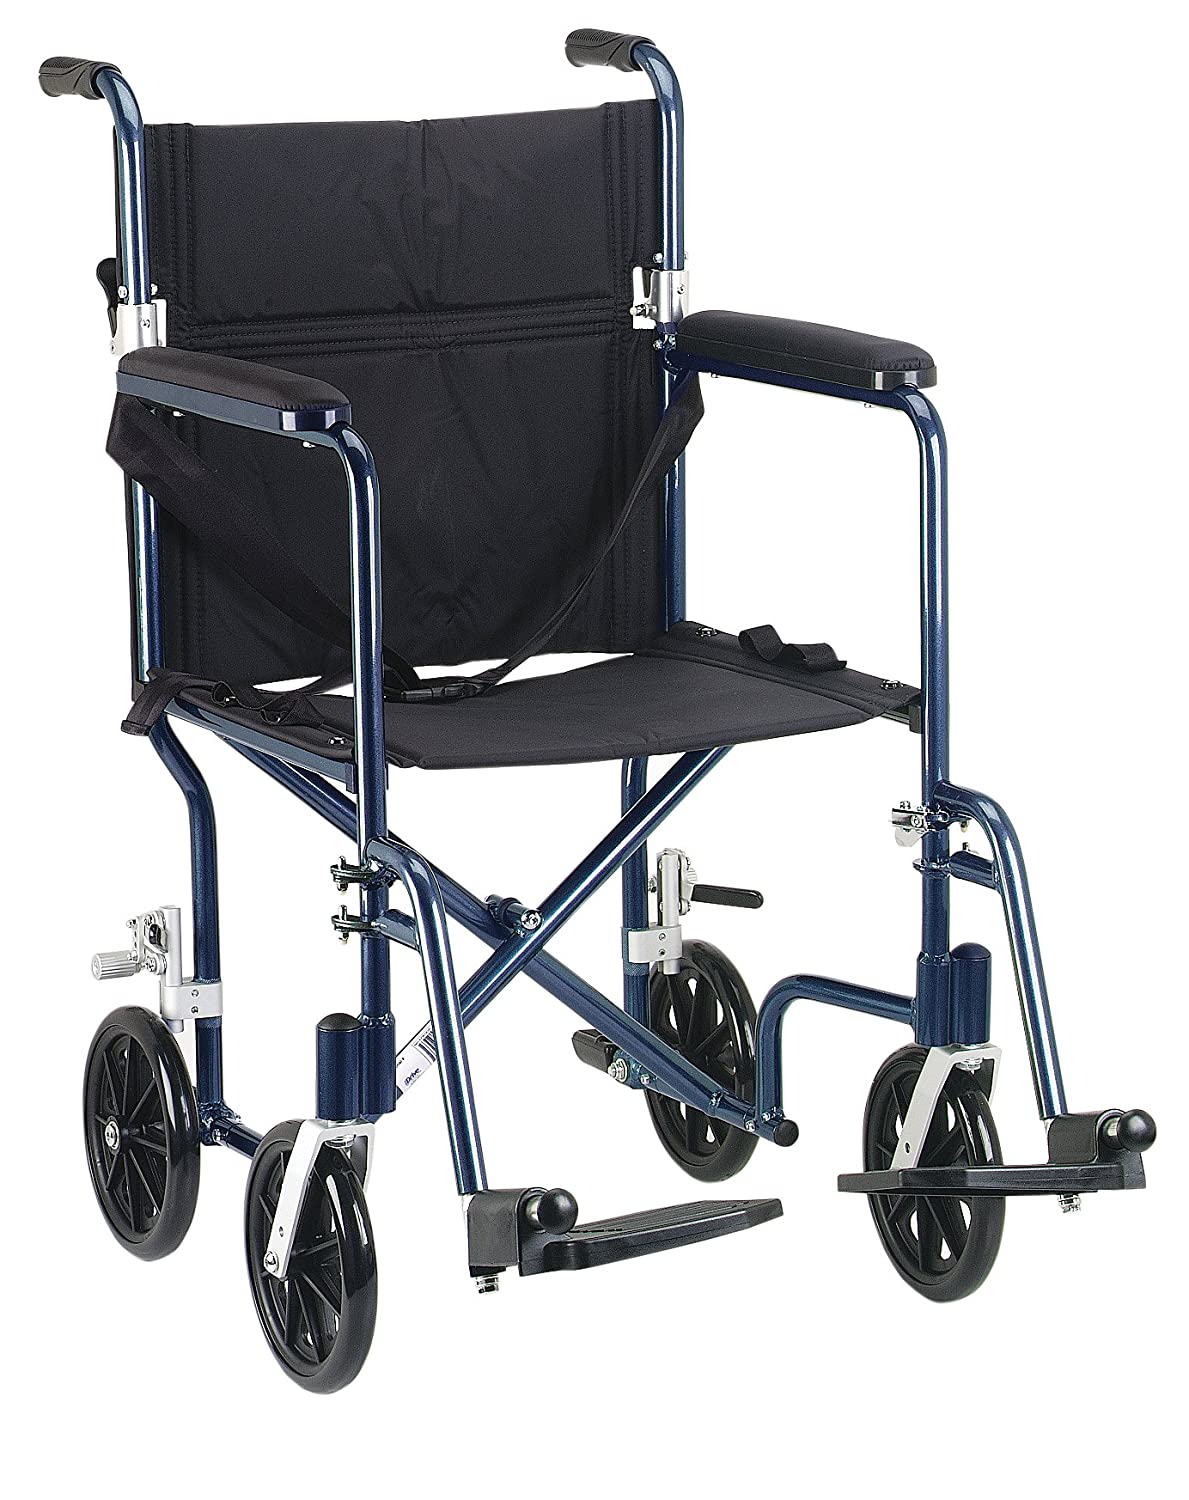 freedom transport about email ultralight chairs product medical questions or have chair us call avacare this